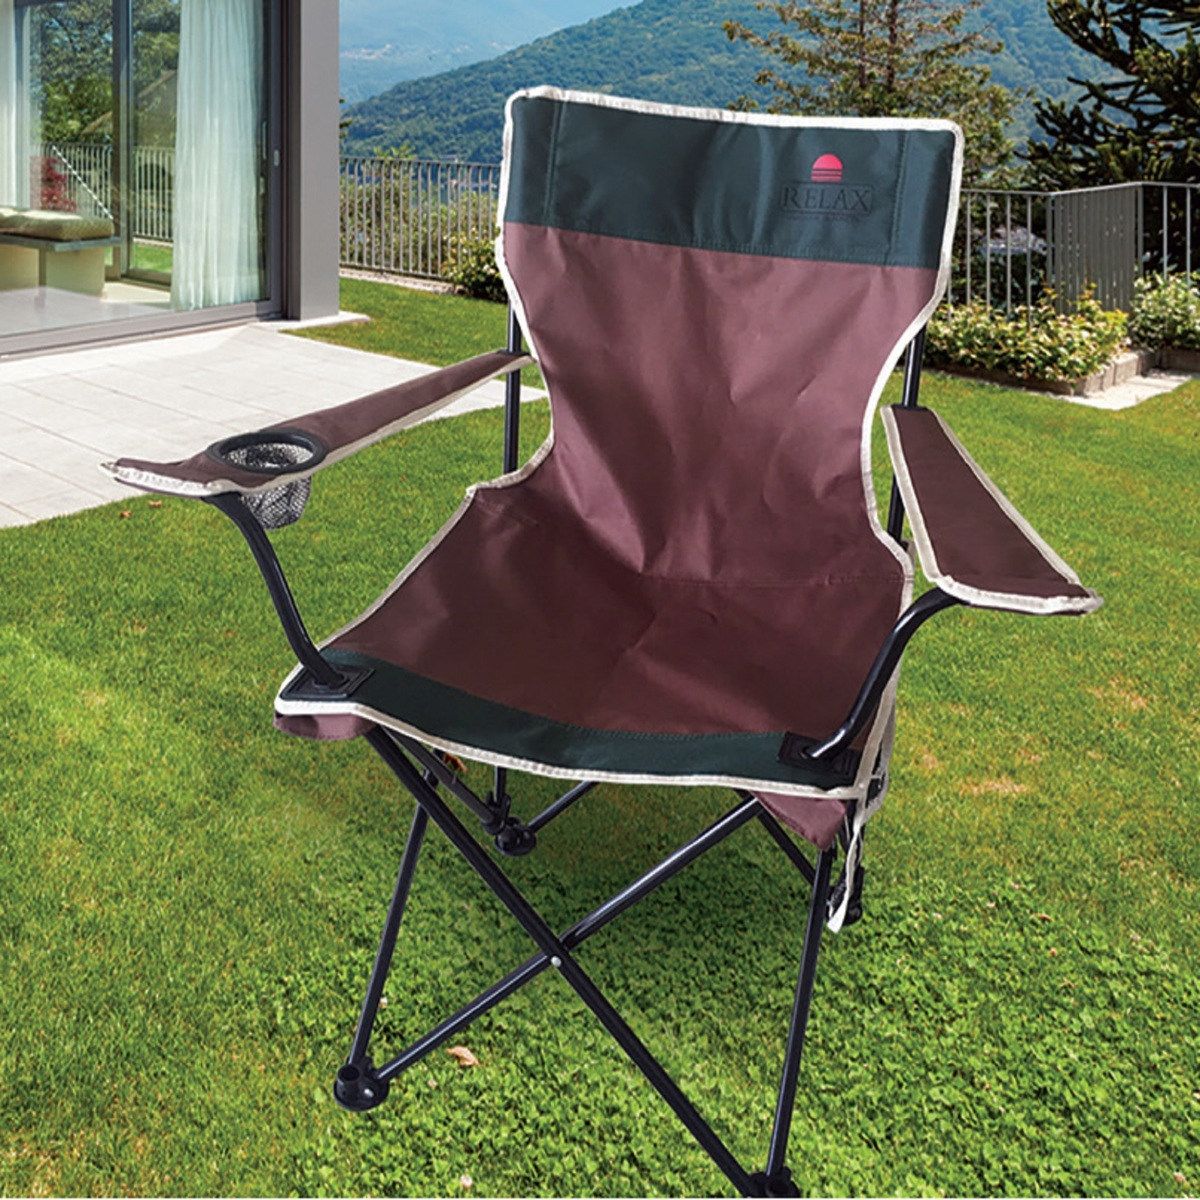 Buy Royal Relax Camping Chair Assorted Nhc1305 Online Lulu